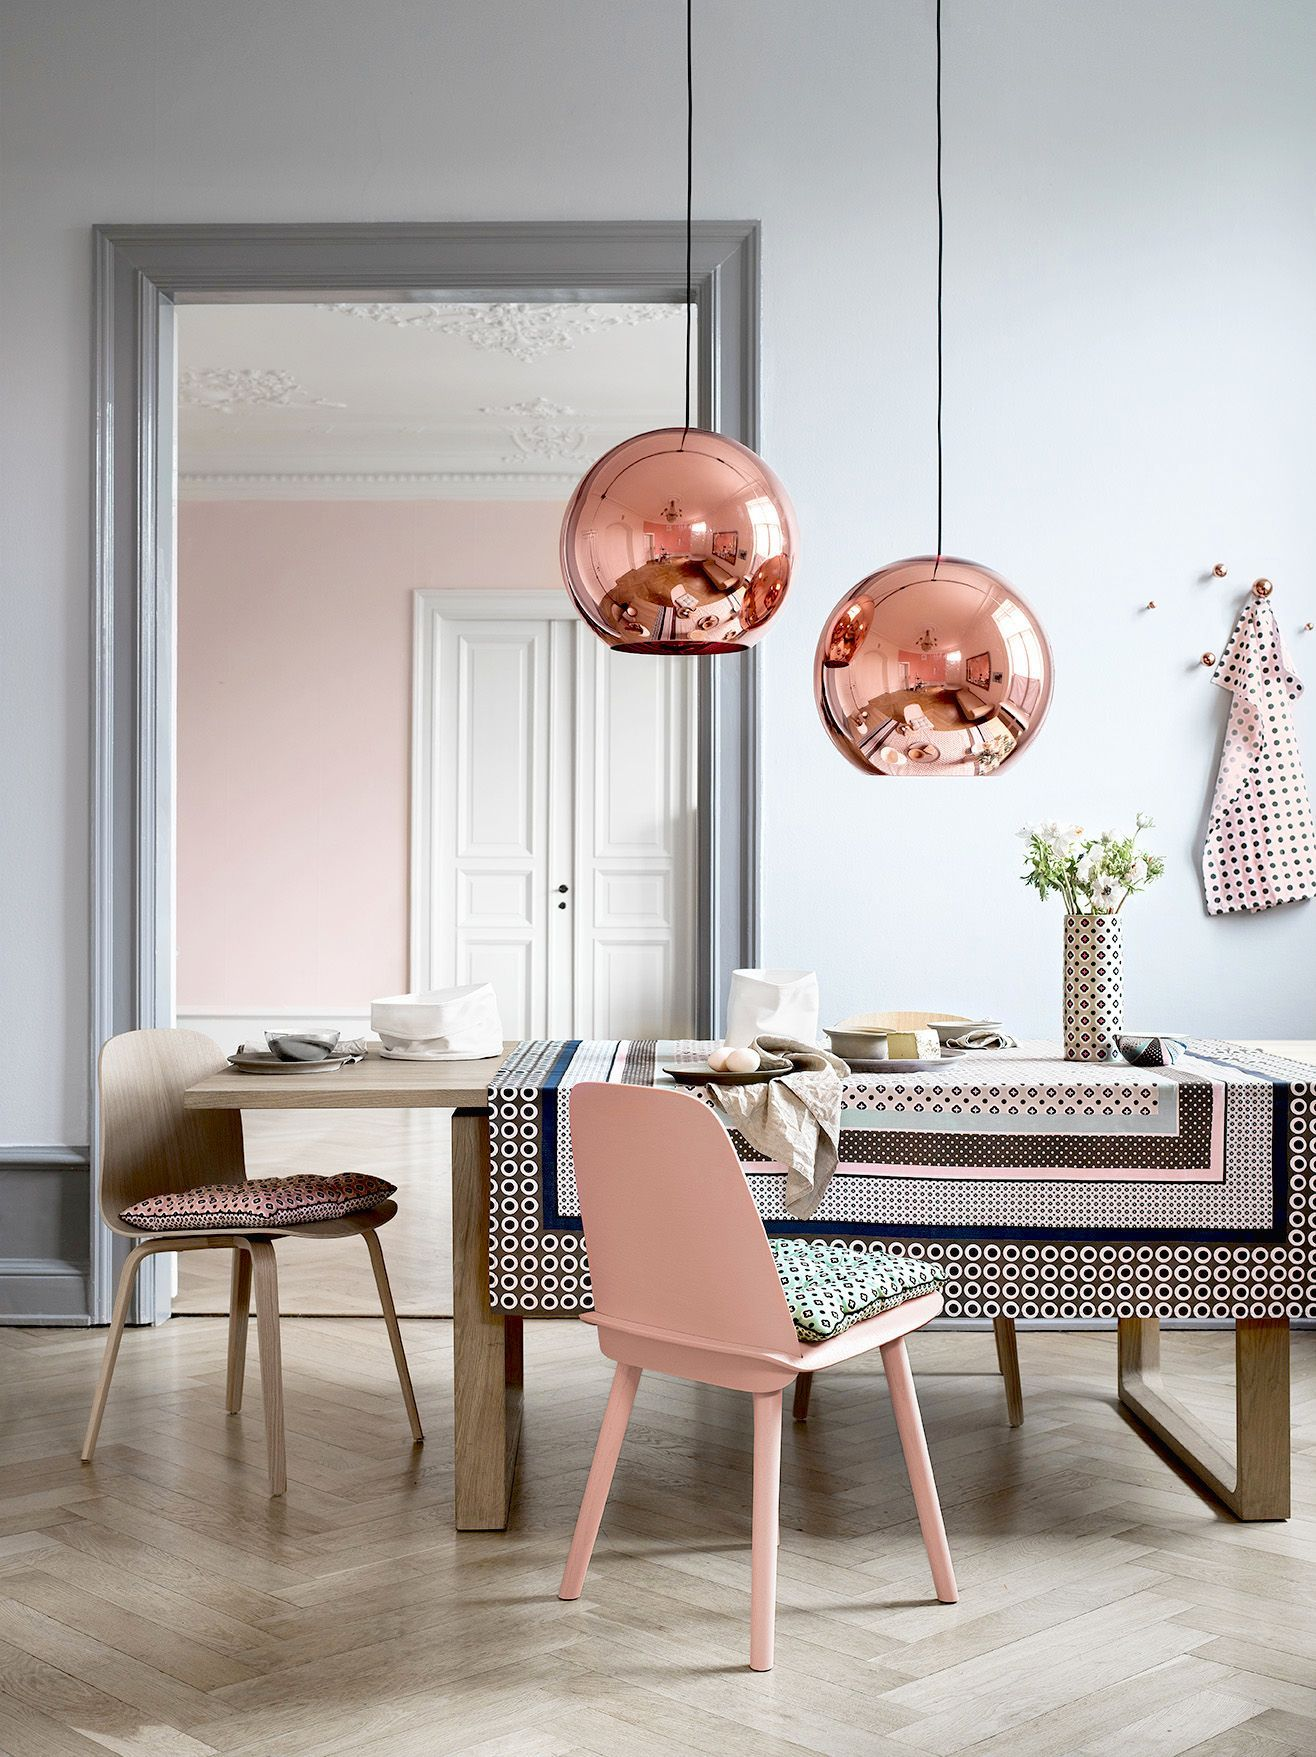 Examples Of Copper Pendant Lighting For Your Home - Over table ceiling lights